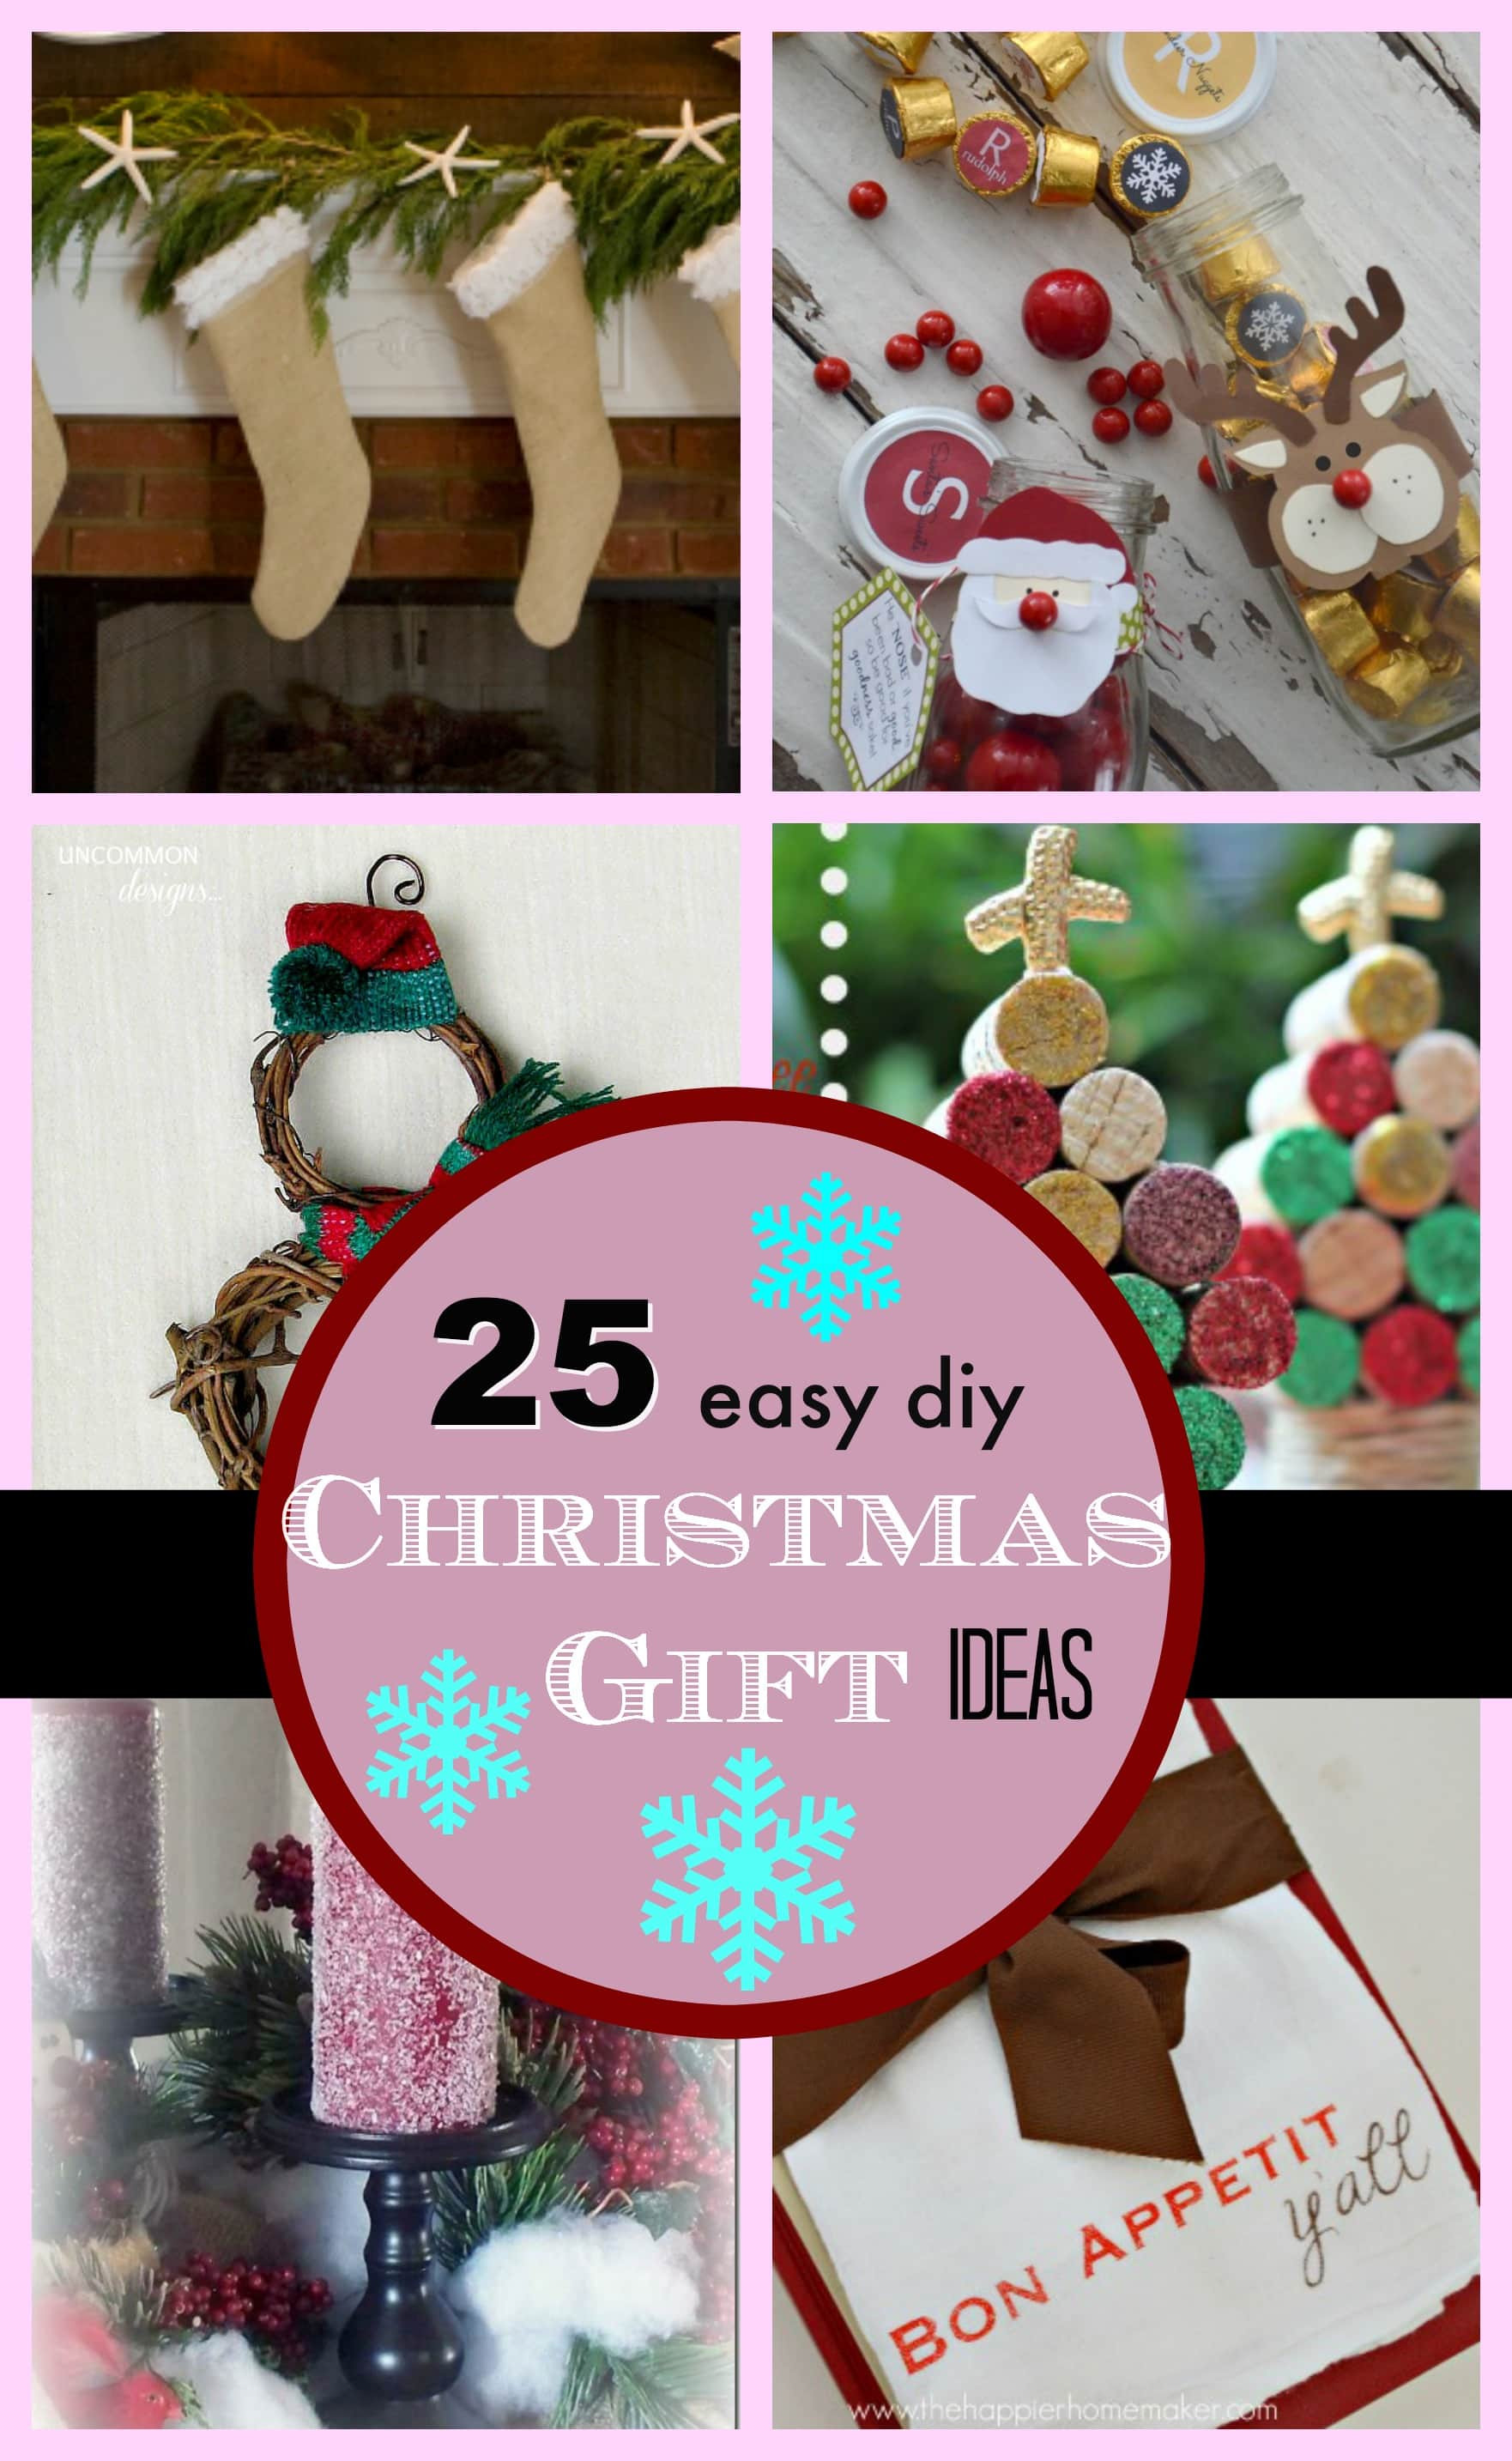 Best ideas about DIY Christmas Ideas . Save or Pin 25 DIY Easy Christmas Gift Ideas PinkWhen Now.